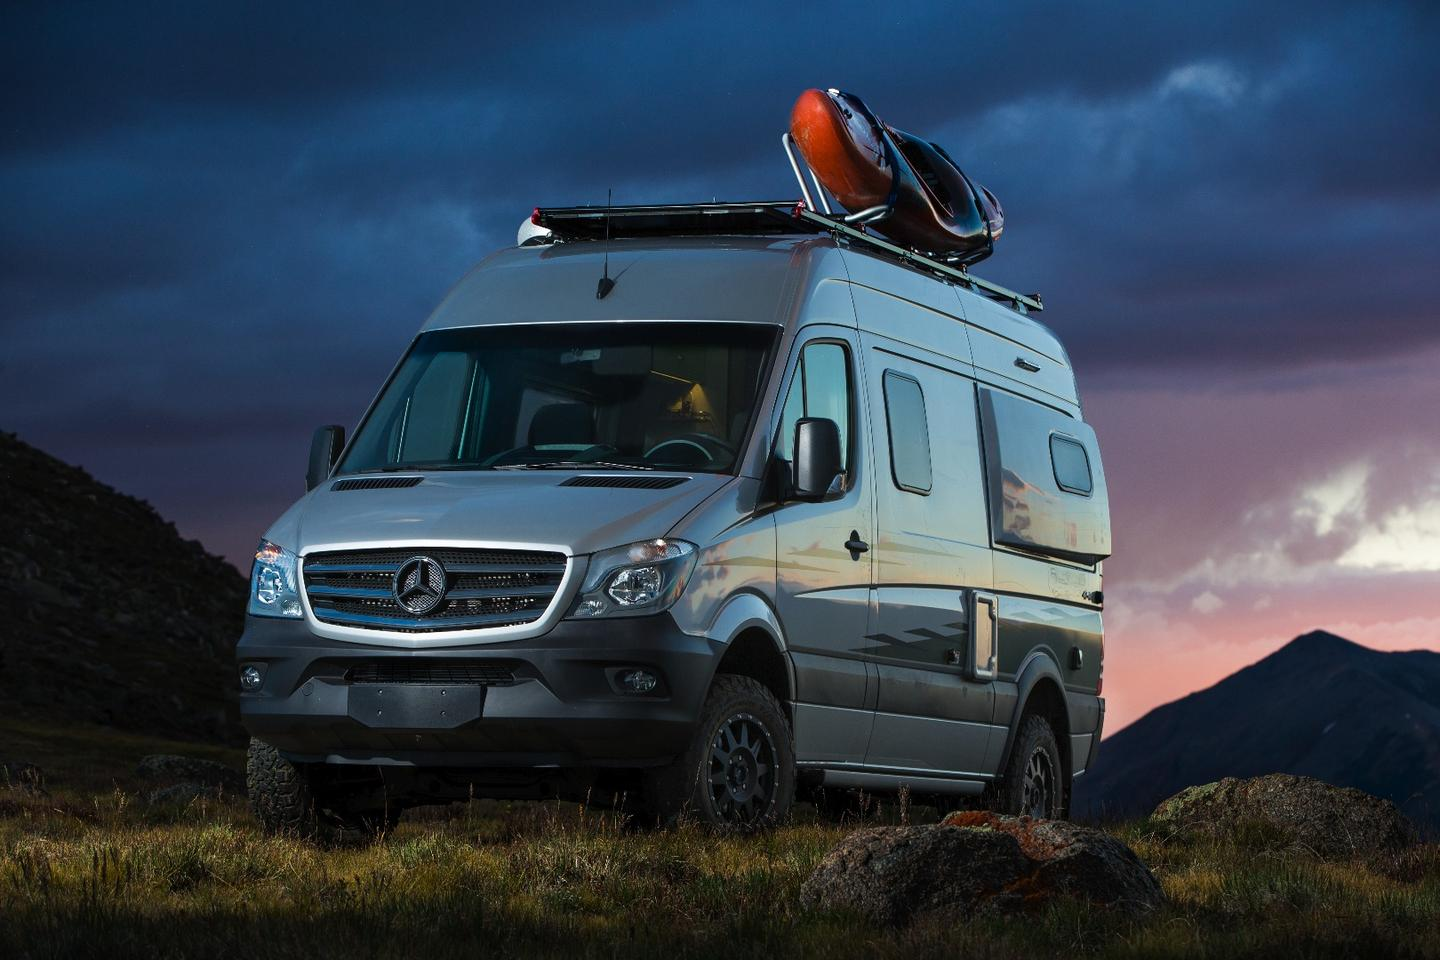 The new Winnebago Revel includes a luggage rack on the roof